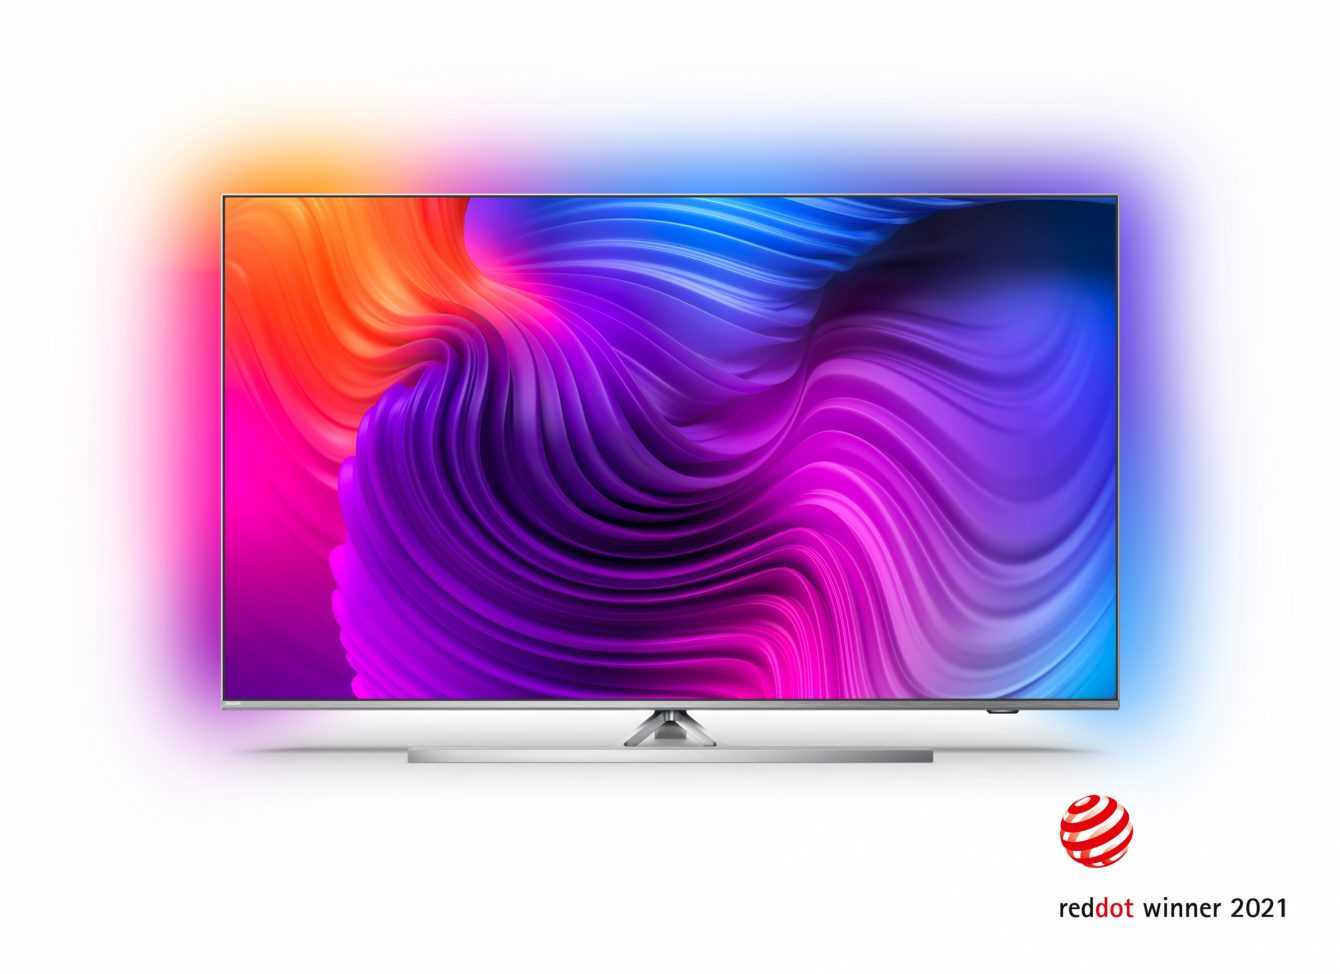 Philips TV & Sound: awarded with four awards at the Red Dot Award 2021